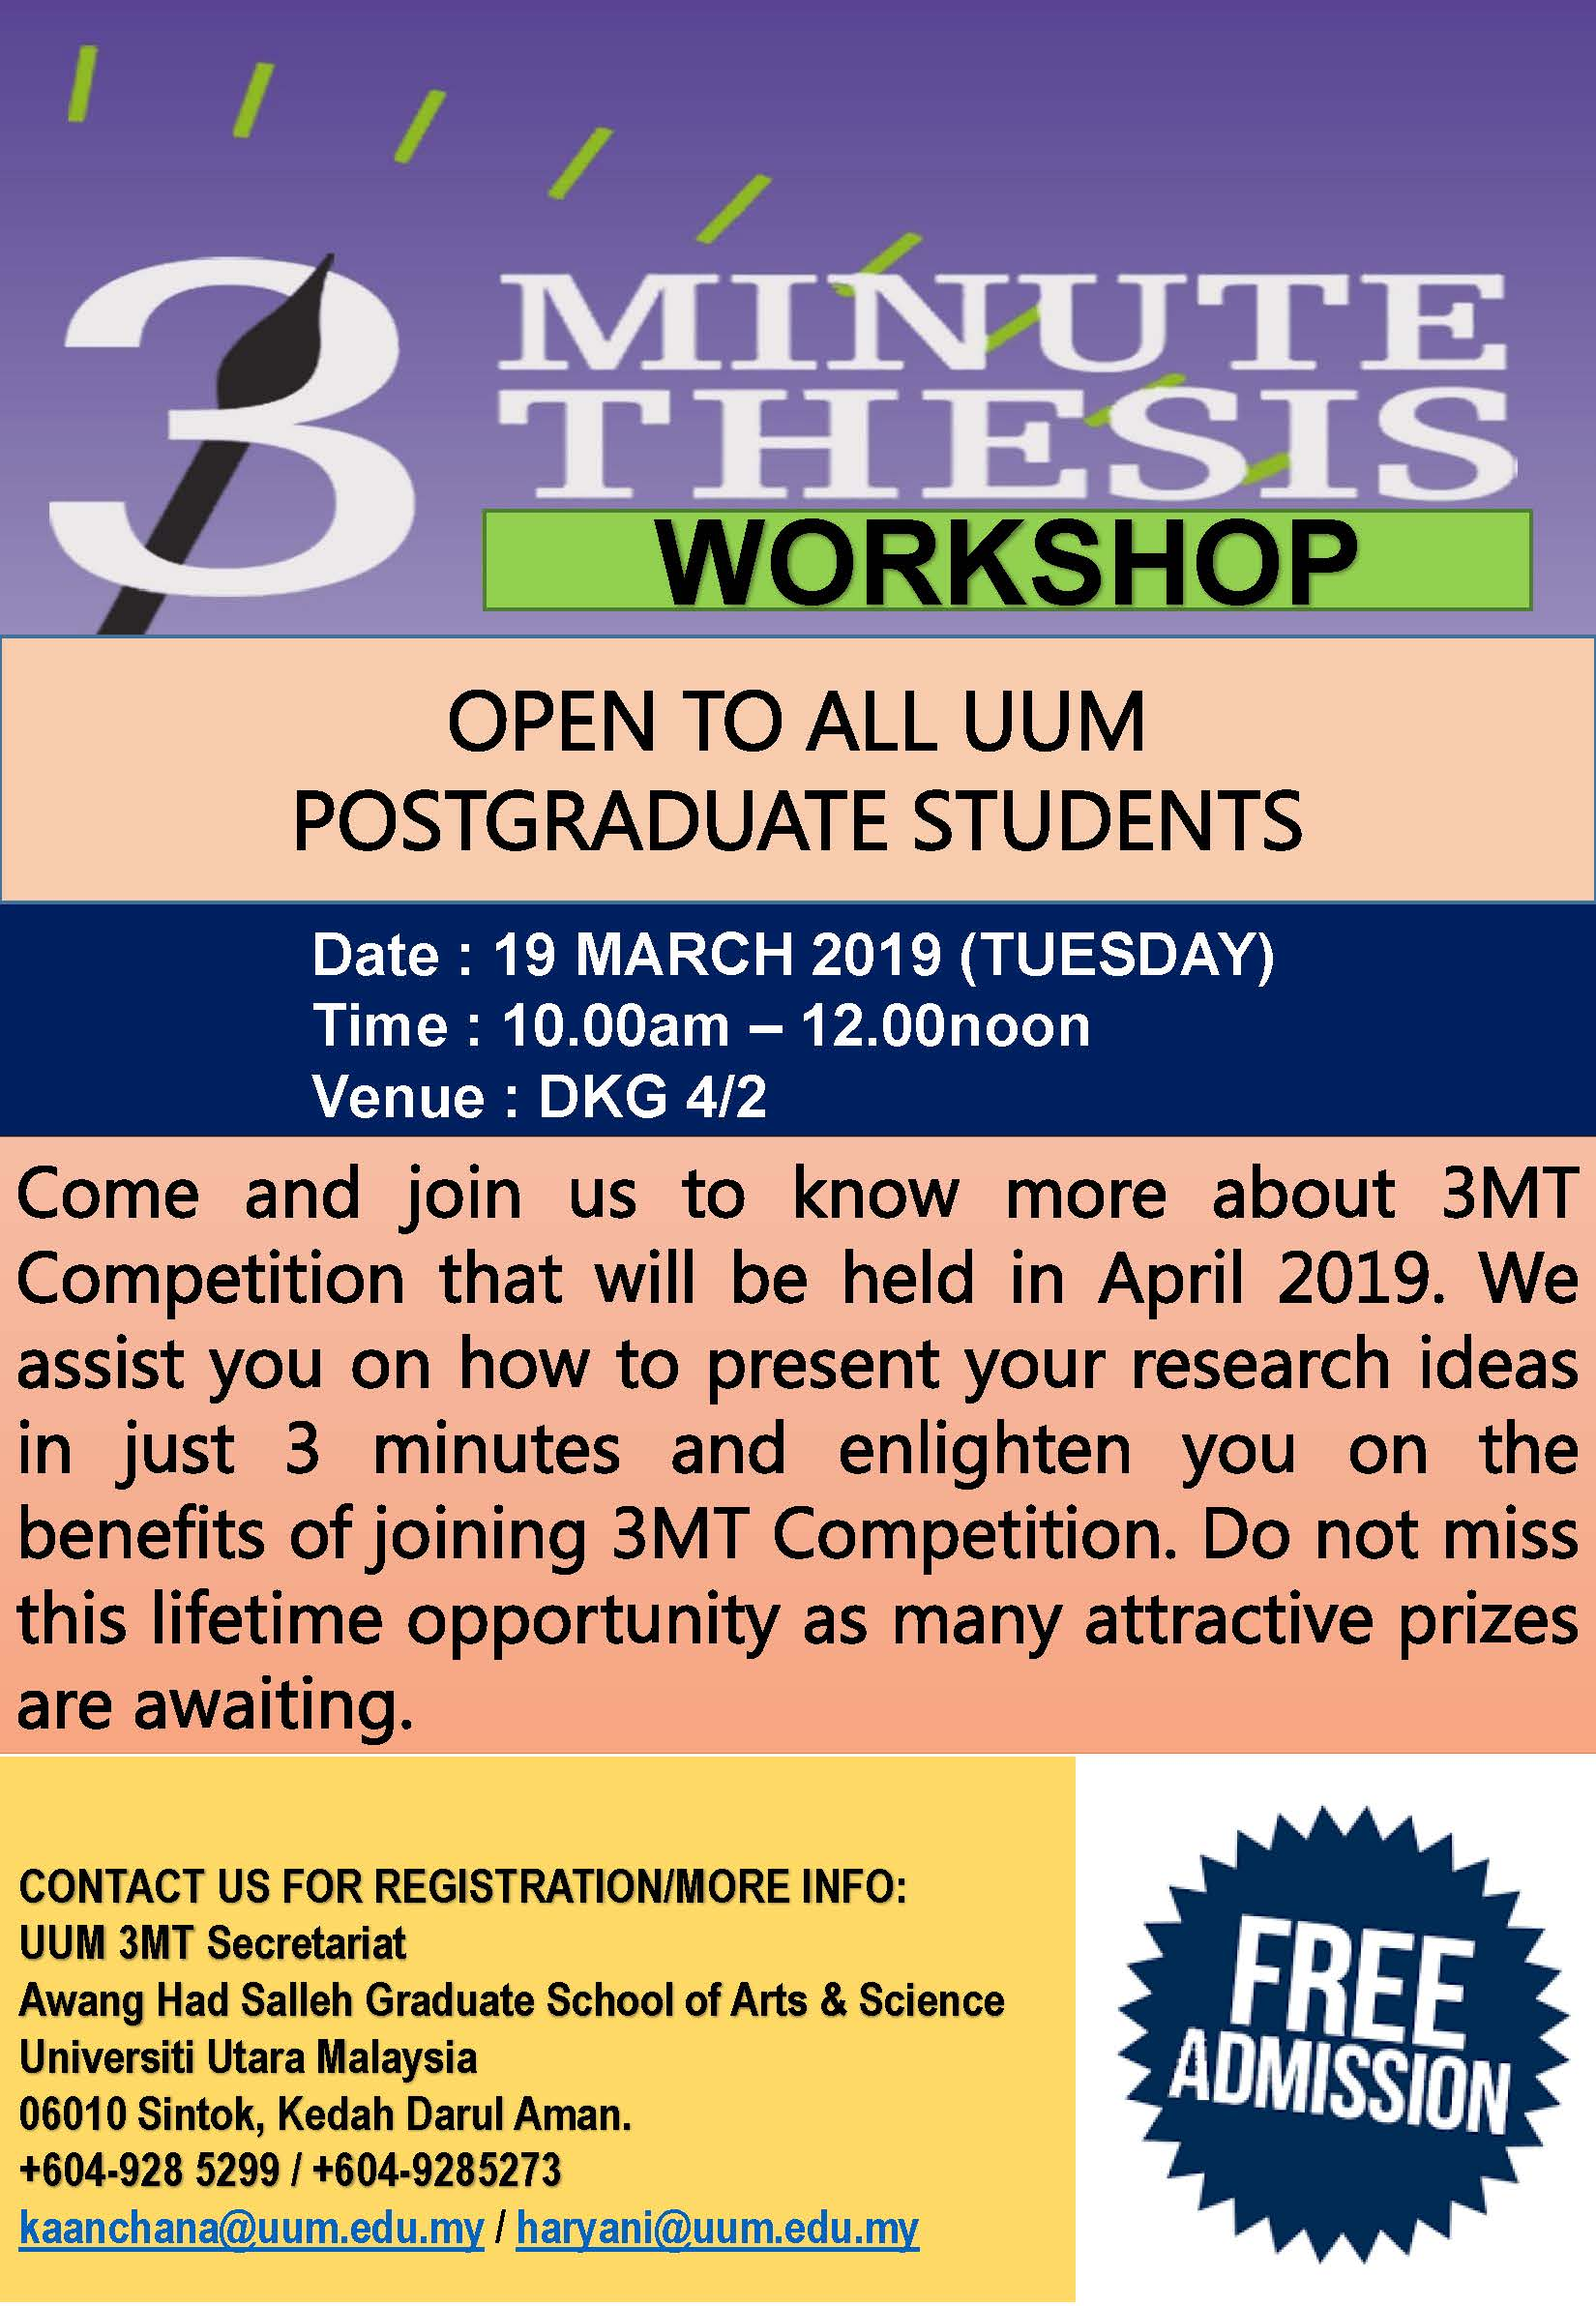 3MT WORKSHOP POSTER v3 3 PDF 1